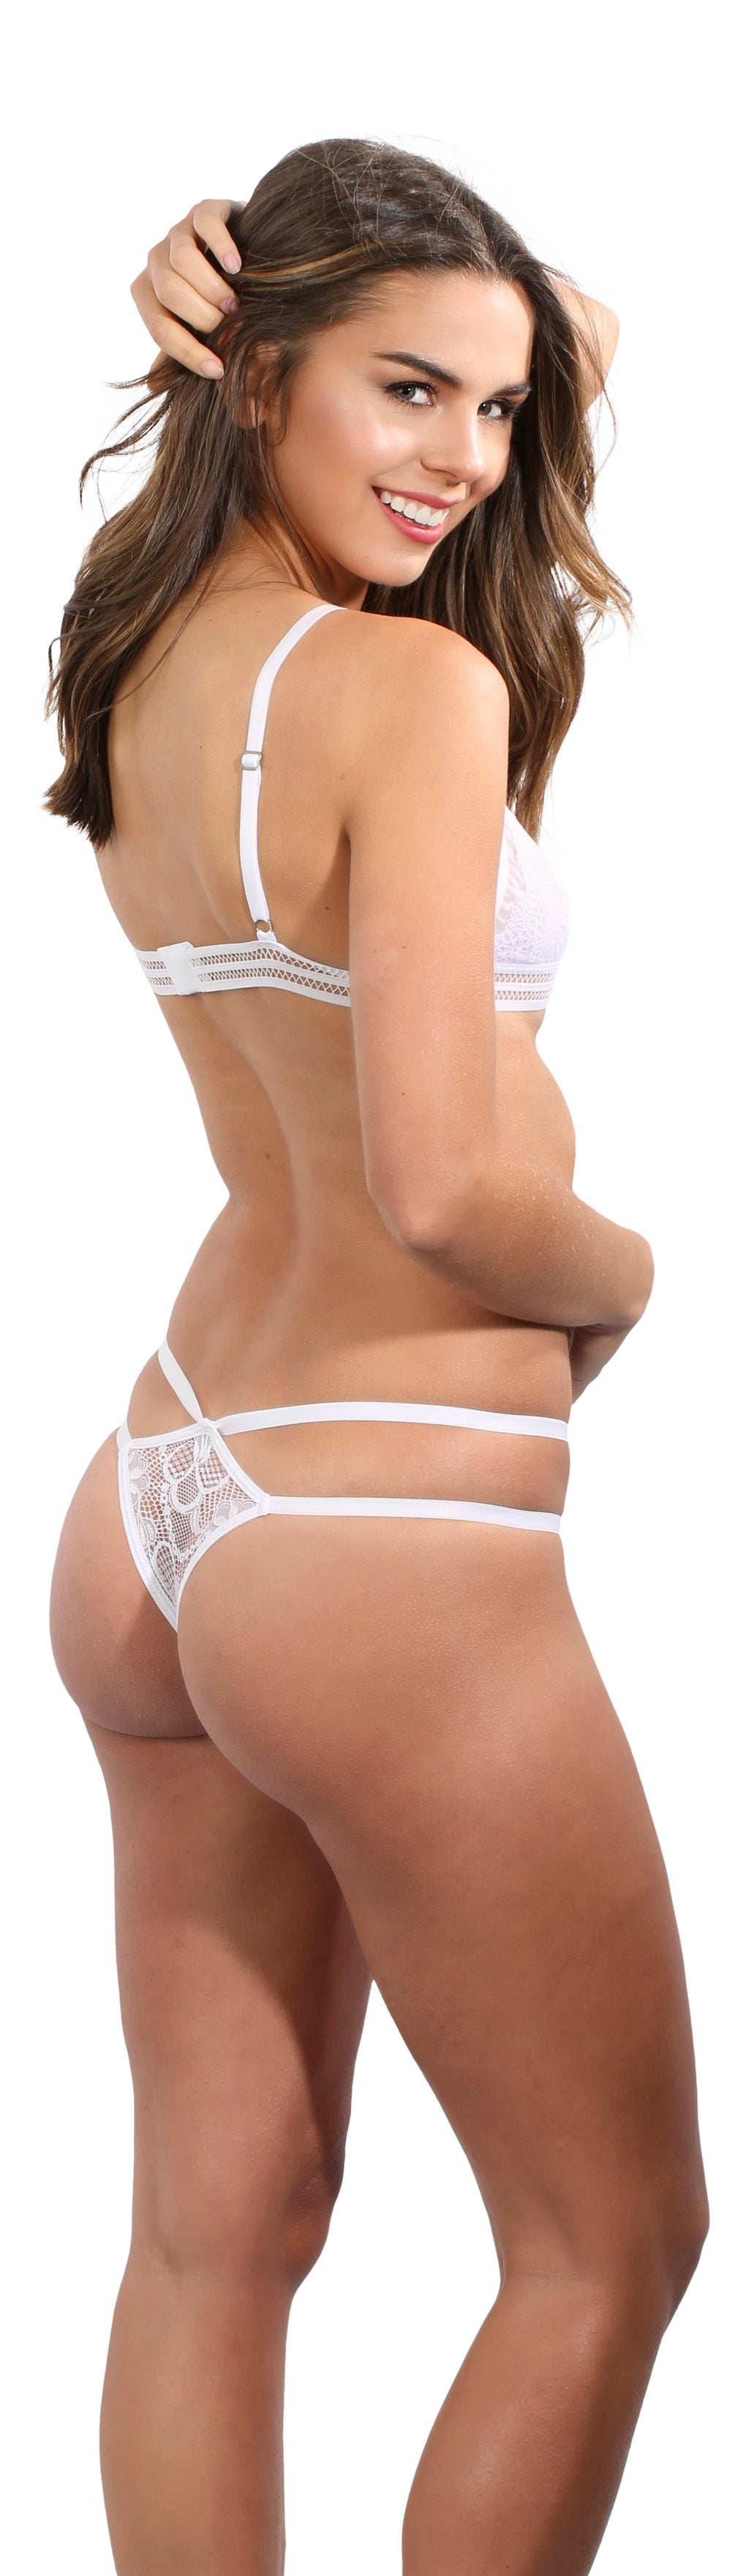 white lace strappy underwear adjustable string bikini panty